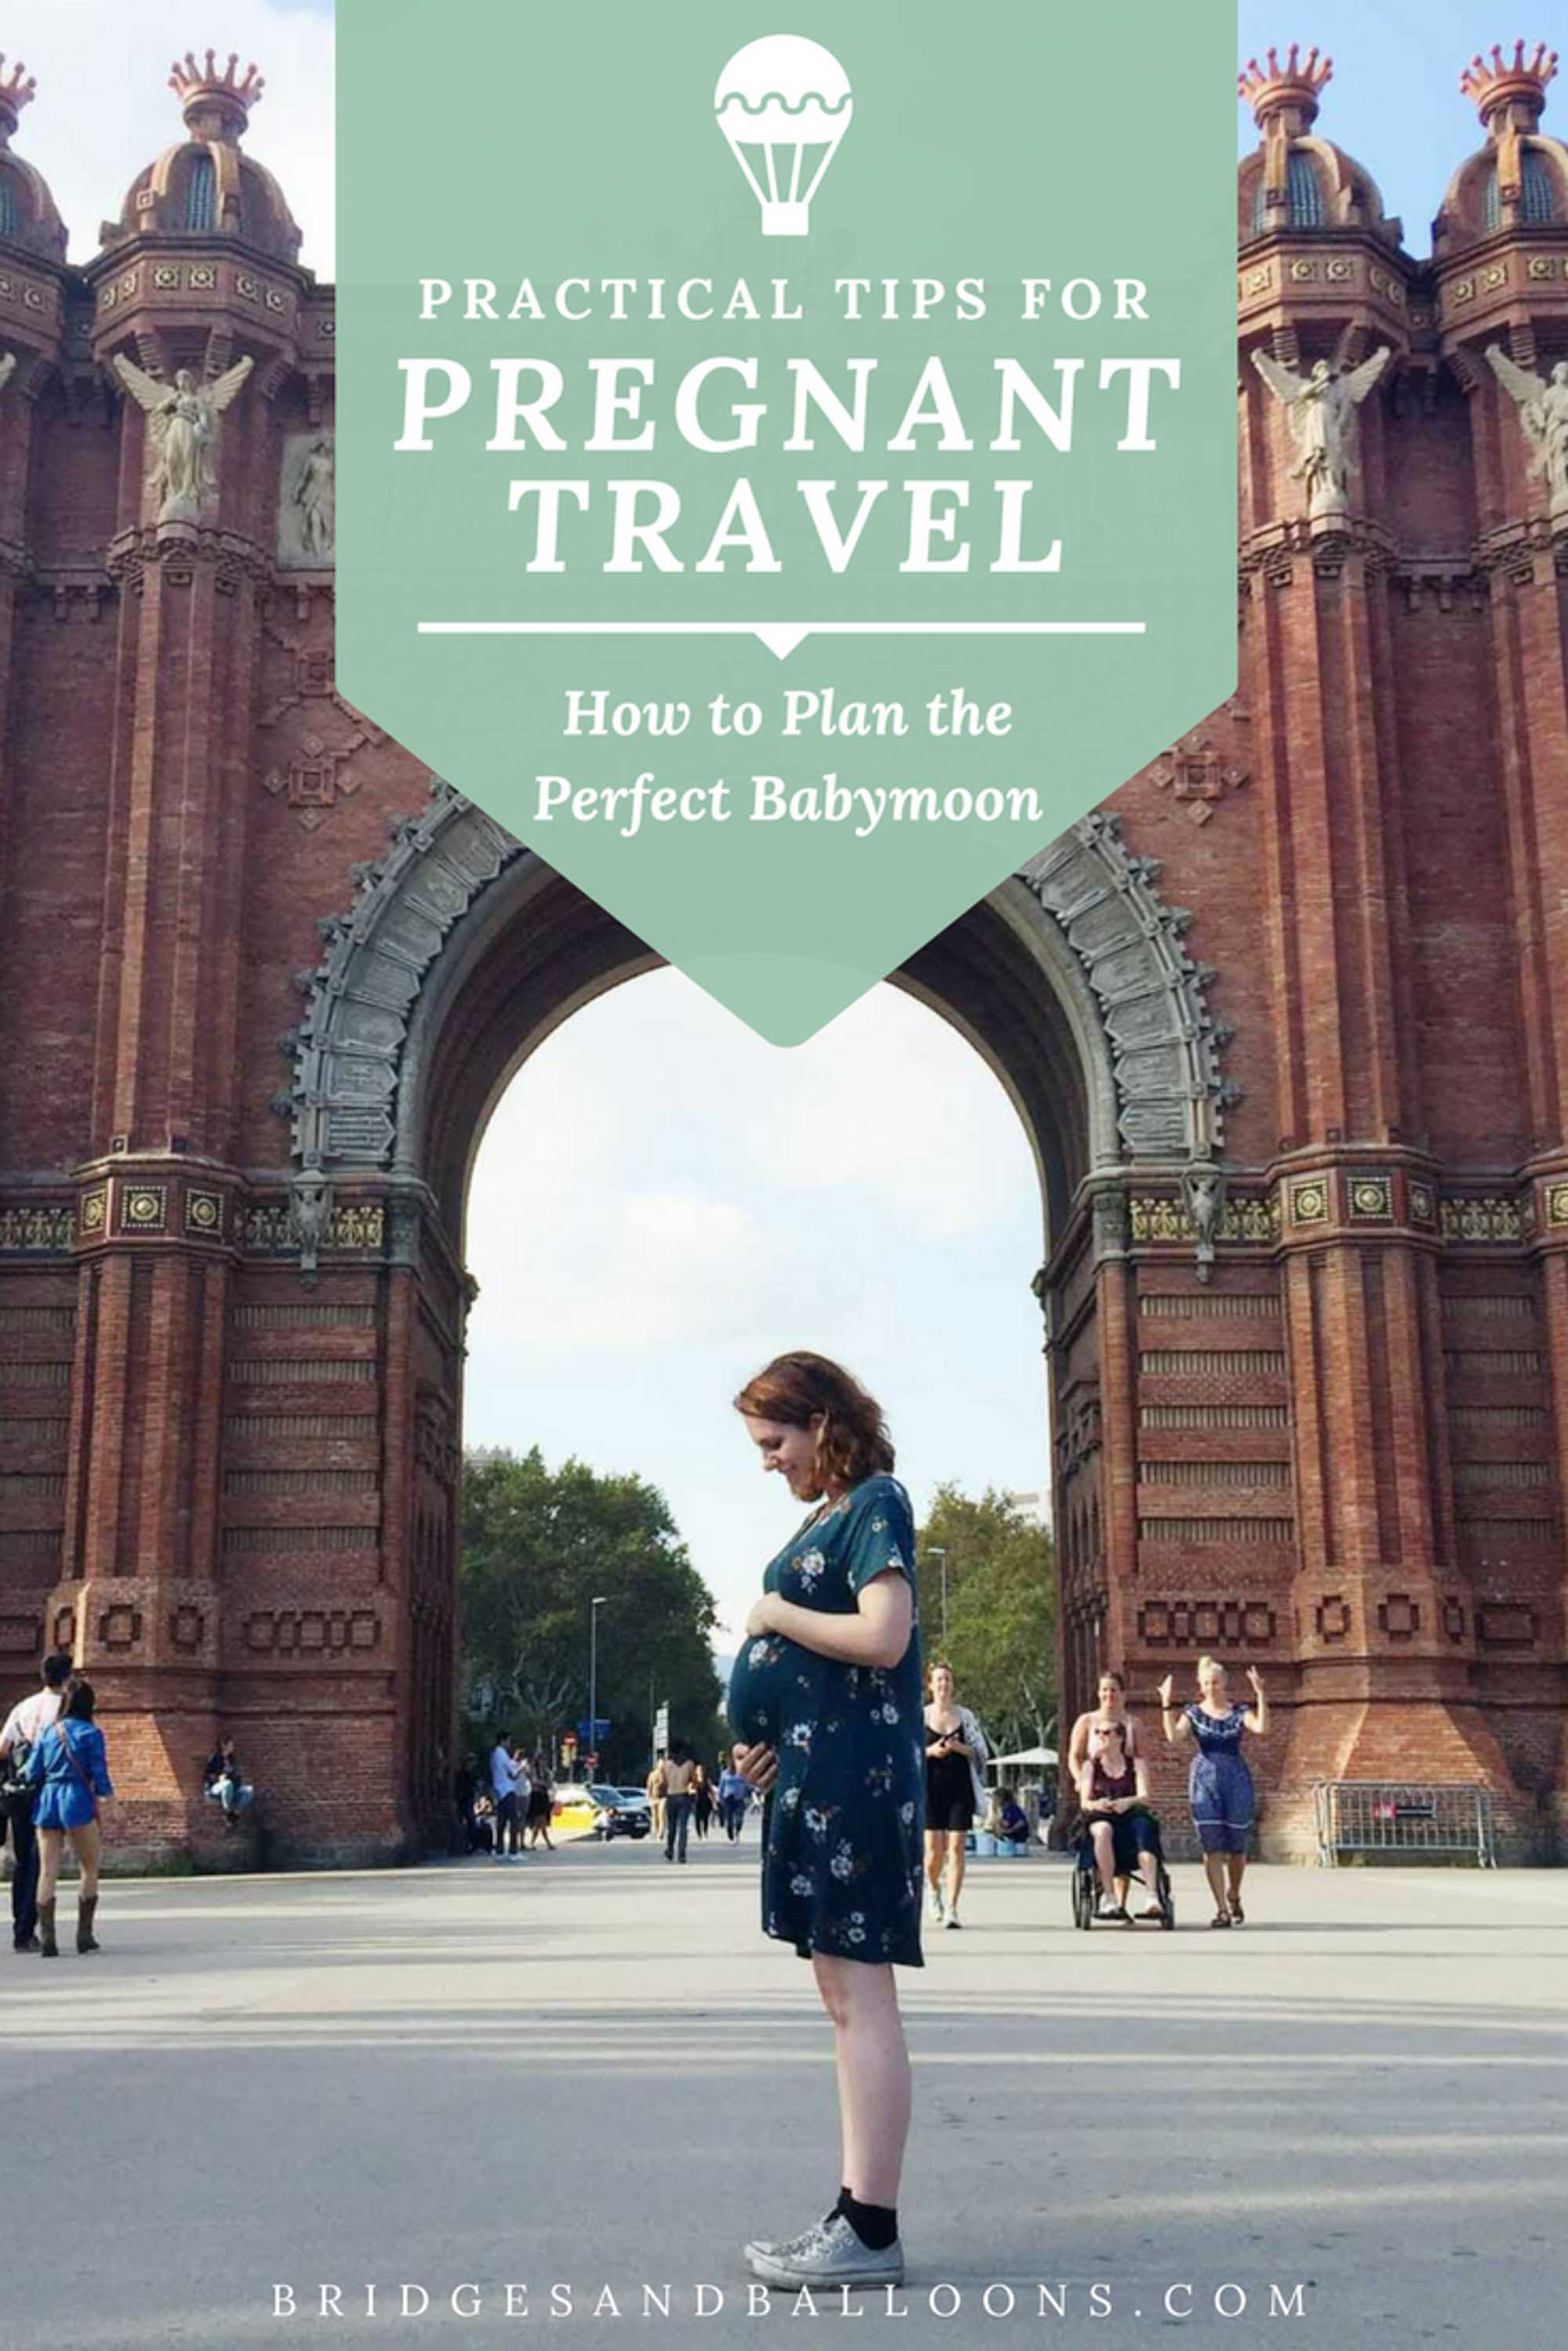 Tips for travelling pregnant and taking a babymoon